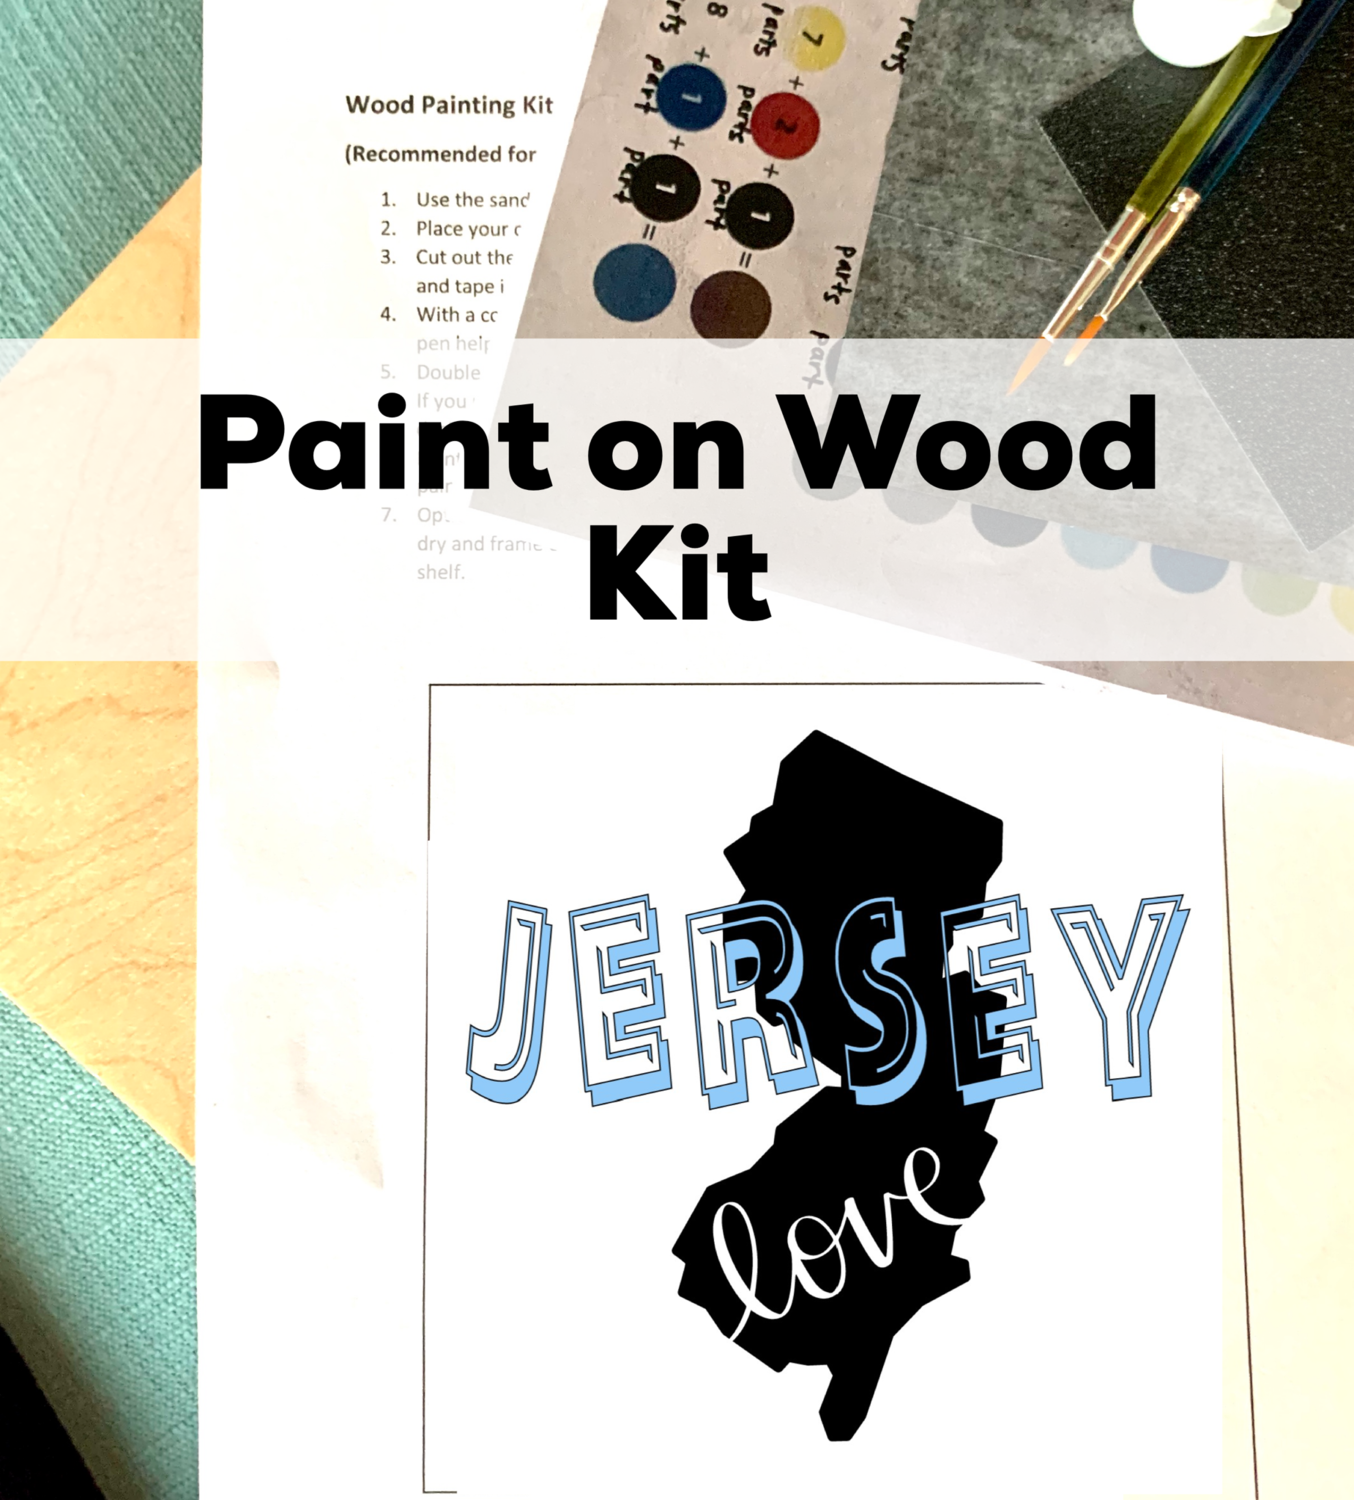 JERSEY LOVE Paint Your Own Wood Sign - Acrylic Painting Craft Kit